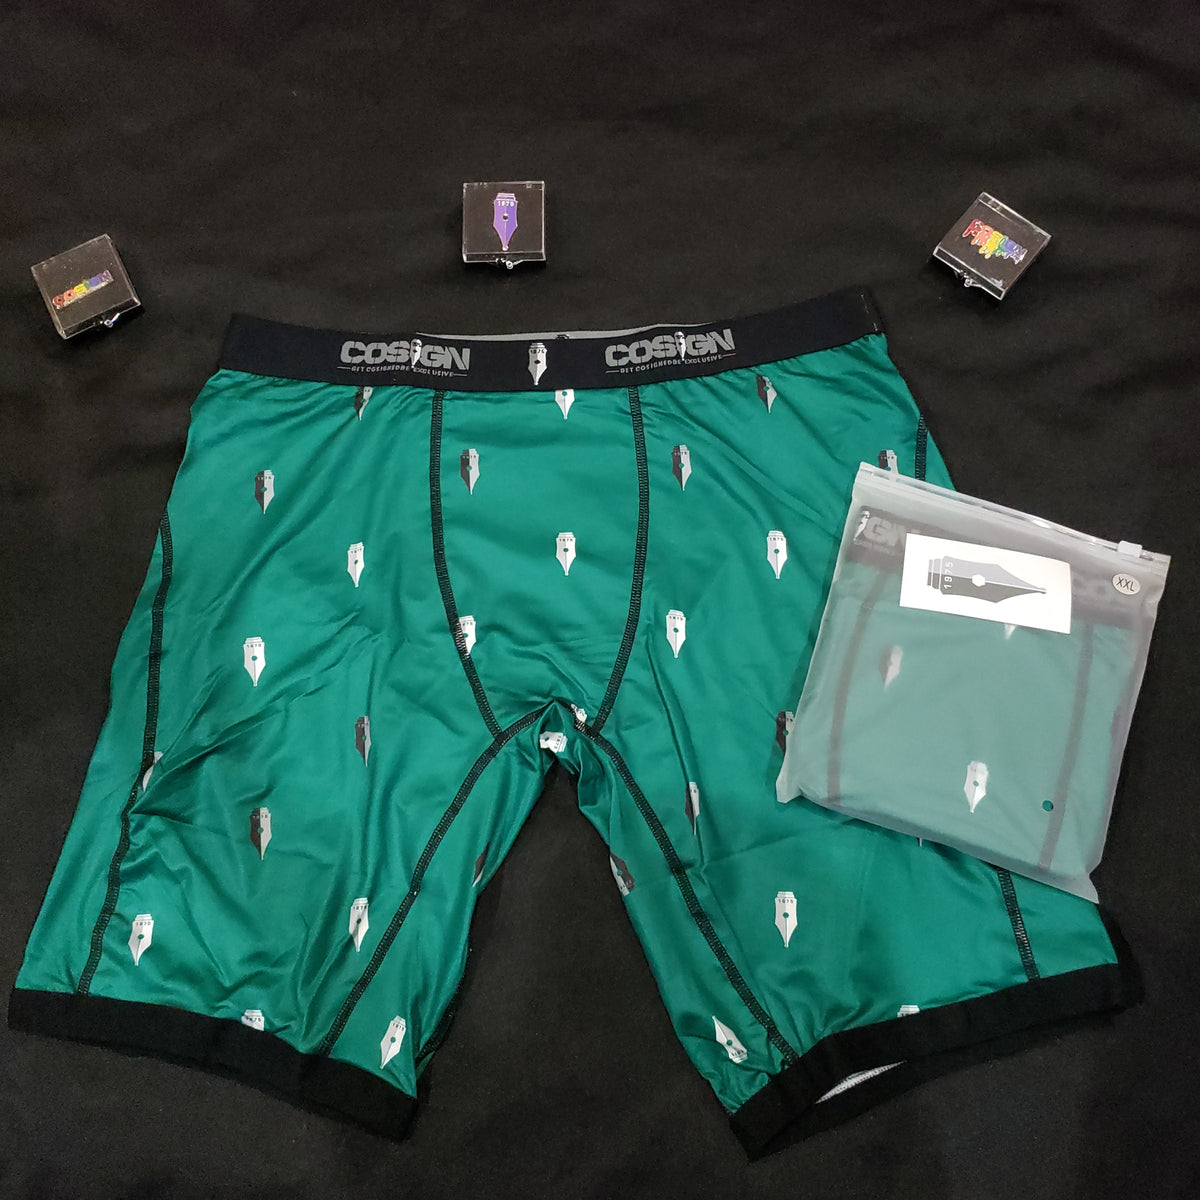 COSIGN1975 BOXERS - GREEN